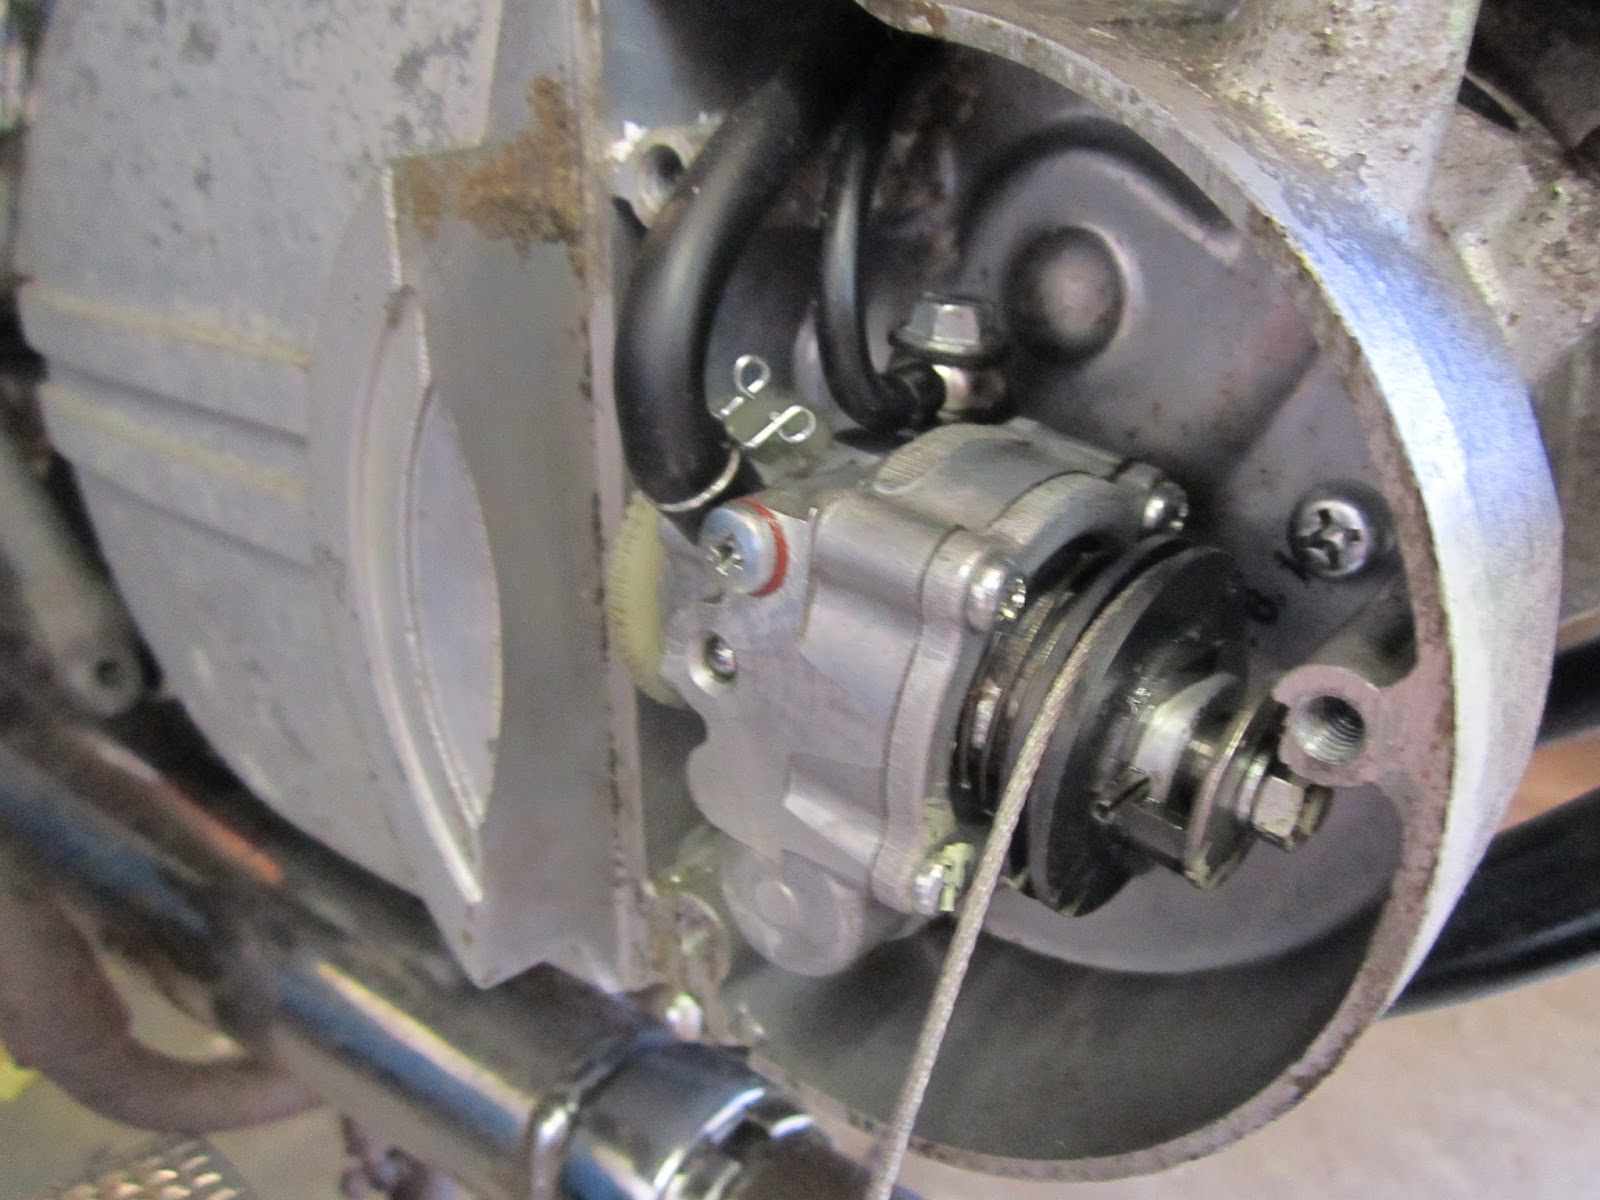 Don't forget this bolt above the oil pump spindle